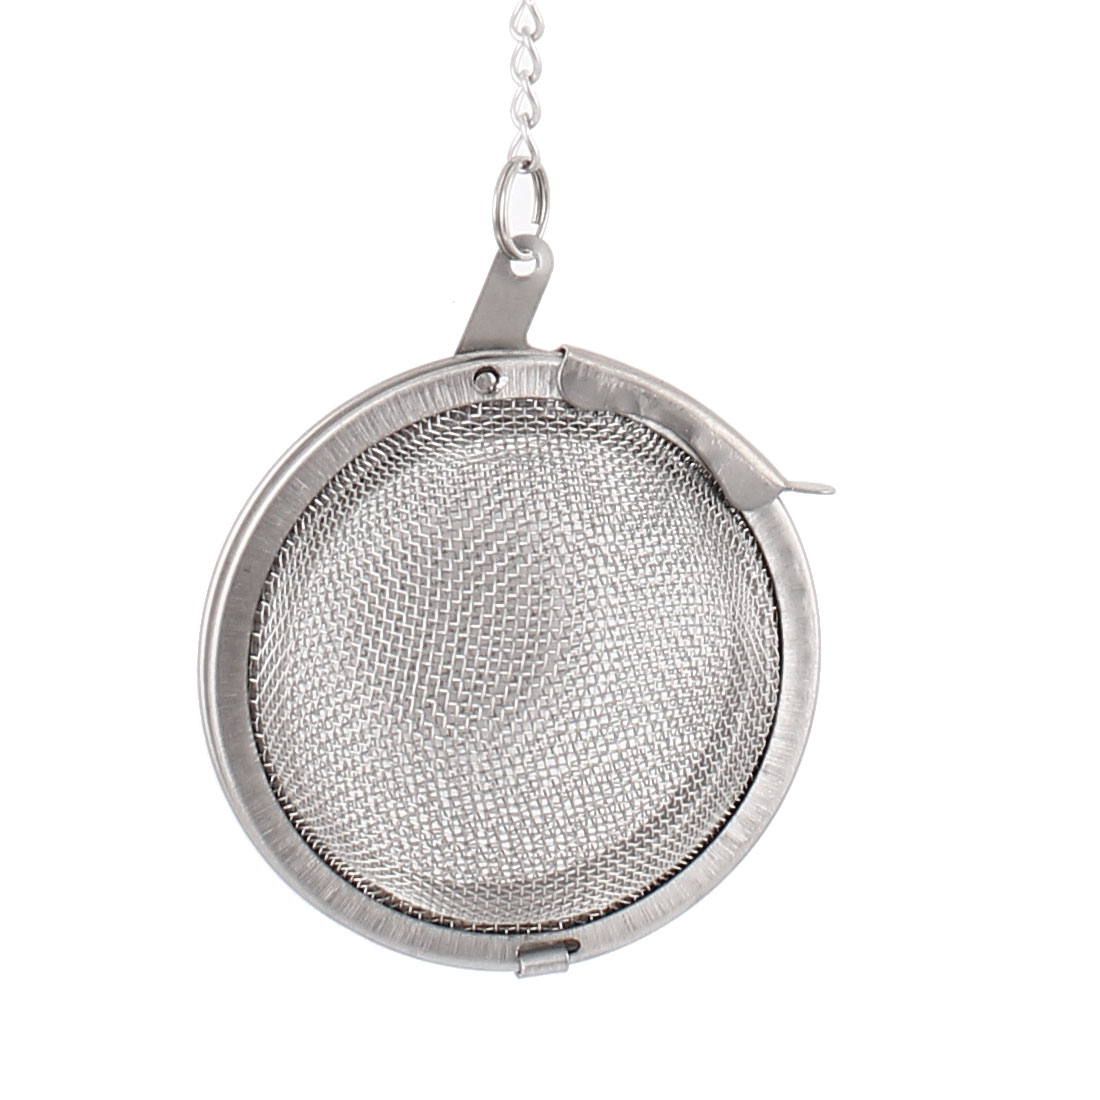 Stainless Steel Infuser Strainer Mesh Locking Tea Leaves Ball Filter 50mm